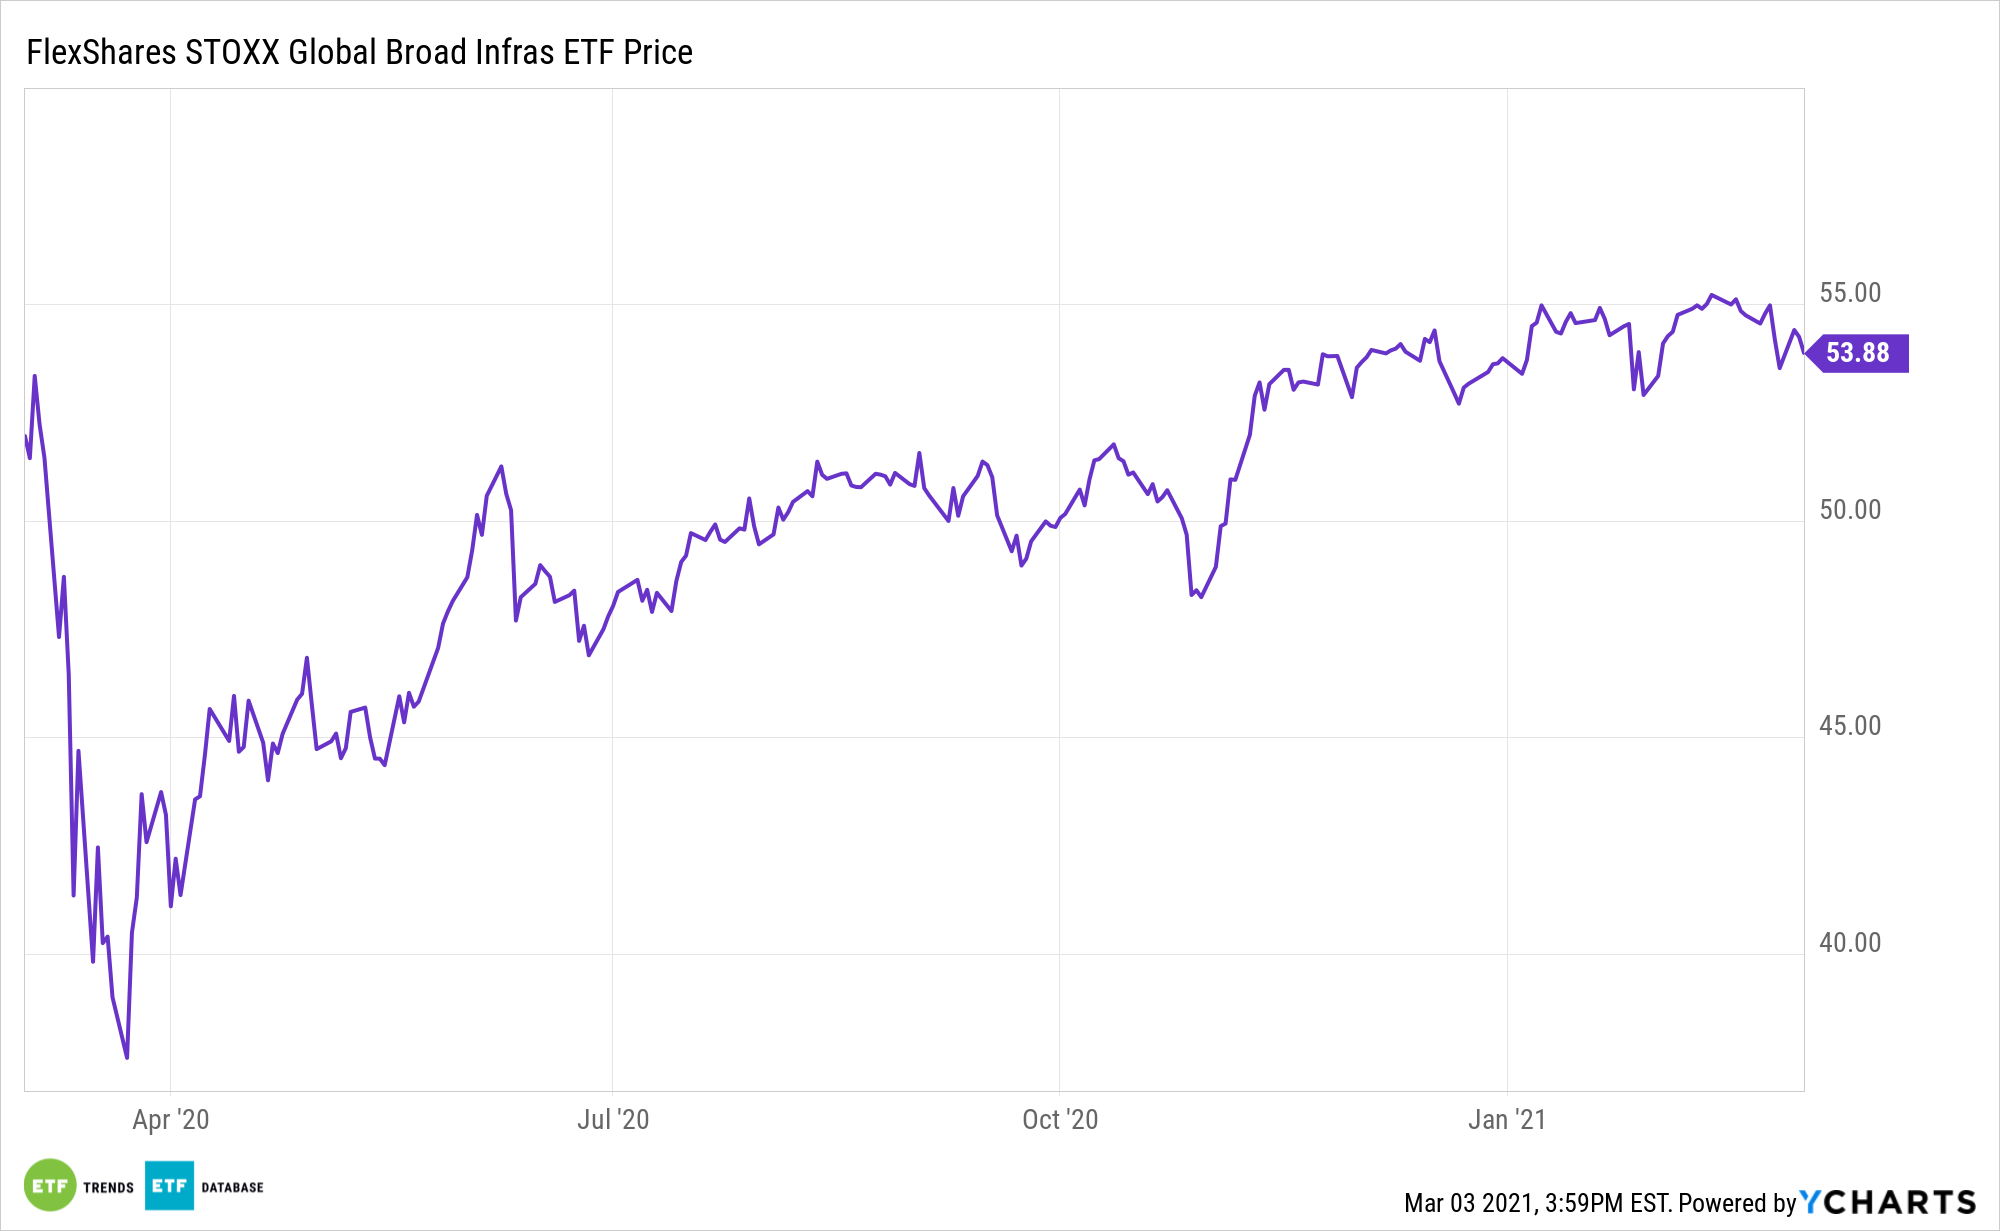 NFRA performance over 1 year